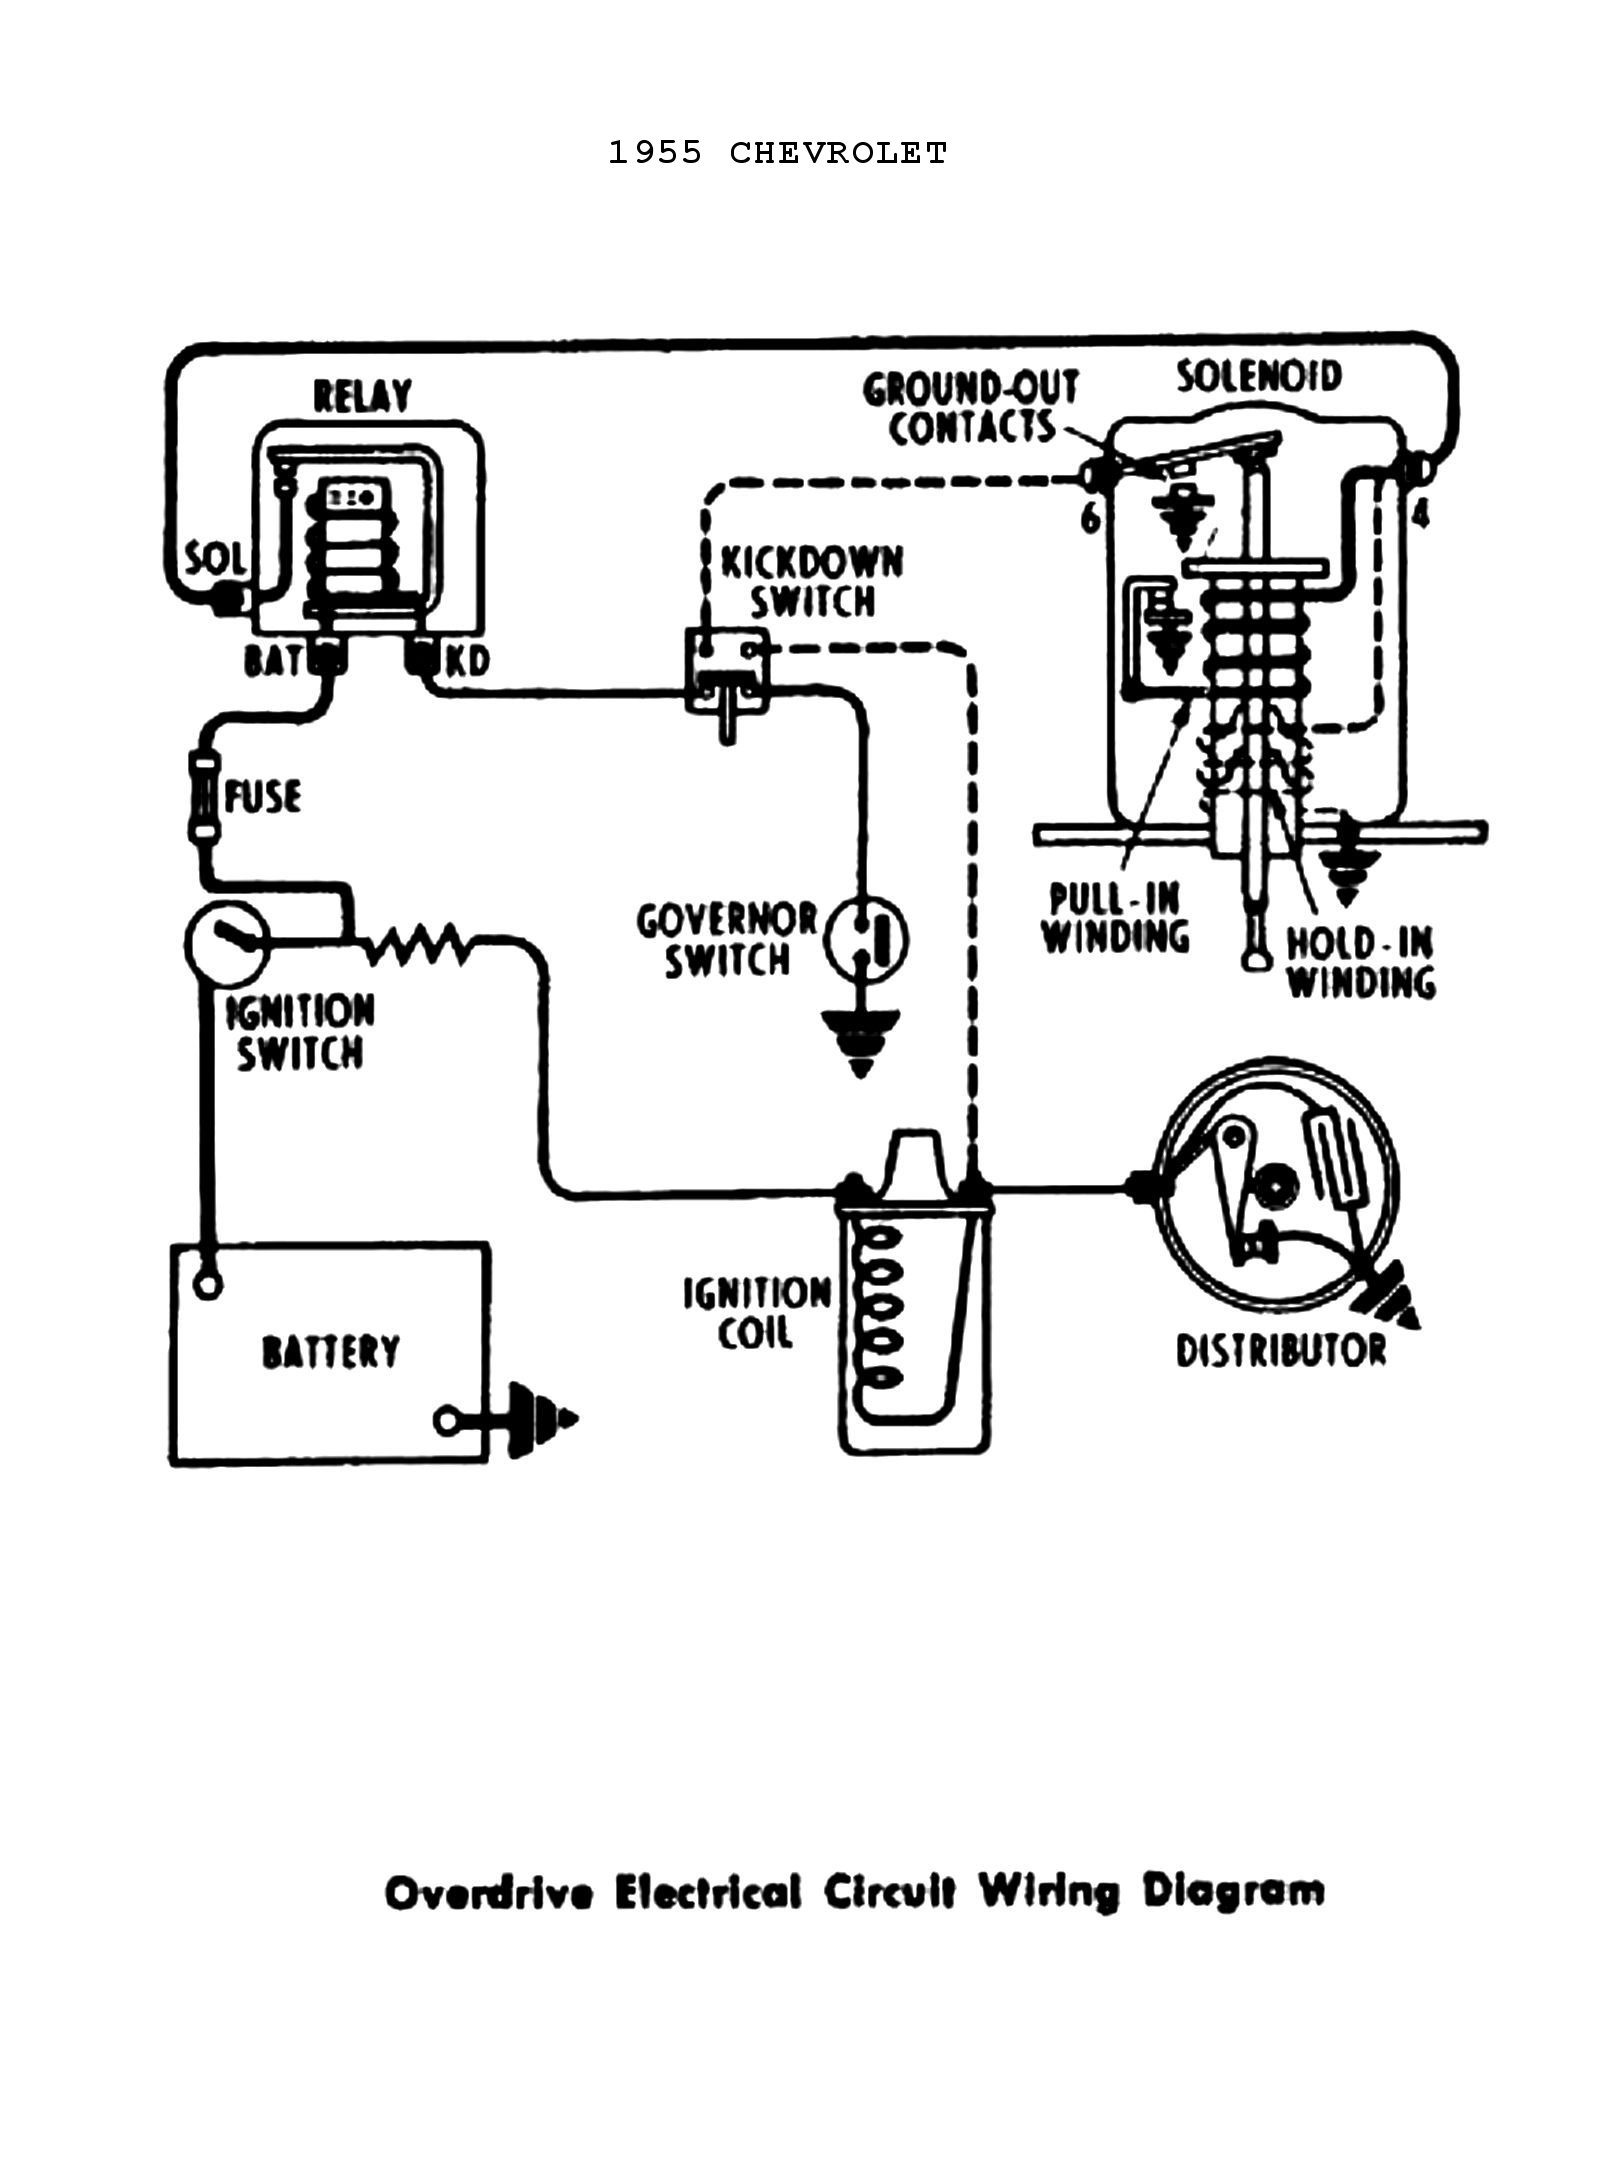 55odtrans1 chevrolet ignition wiring diagram chevrolet ignition wiring gm ignition wiring diagram at nearapp.co